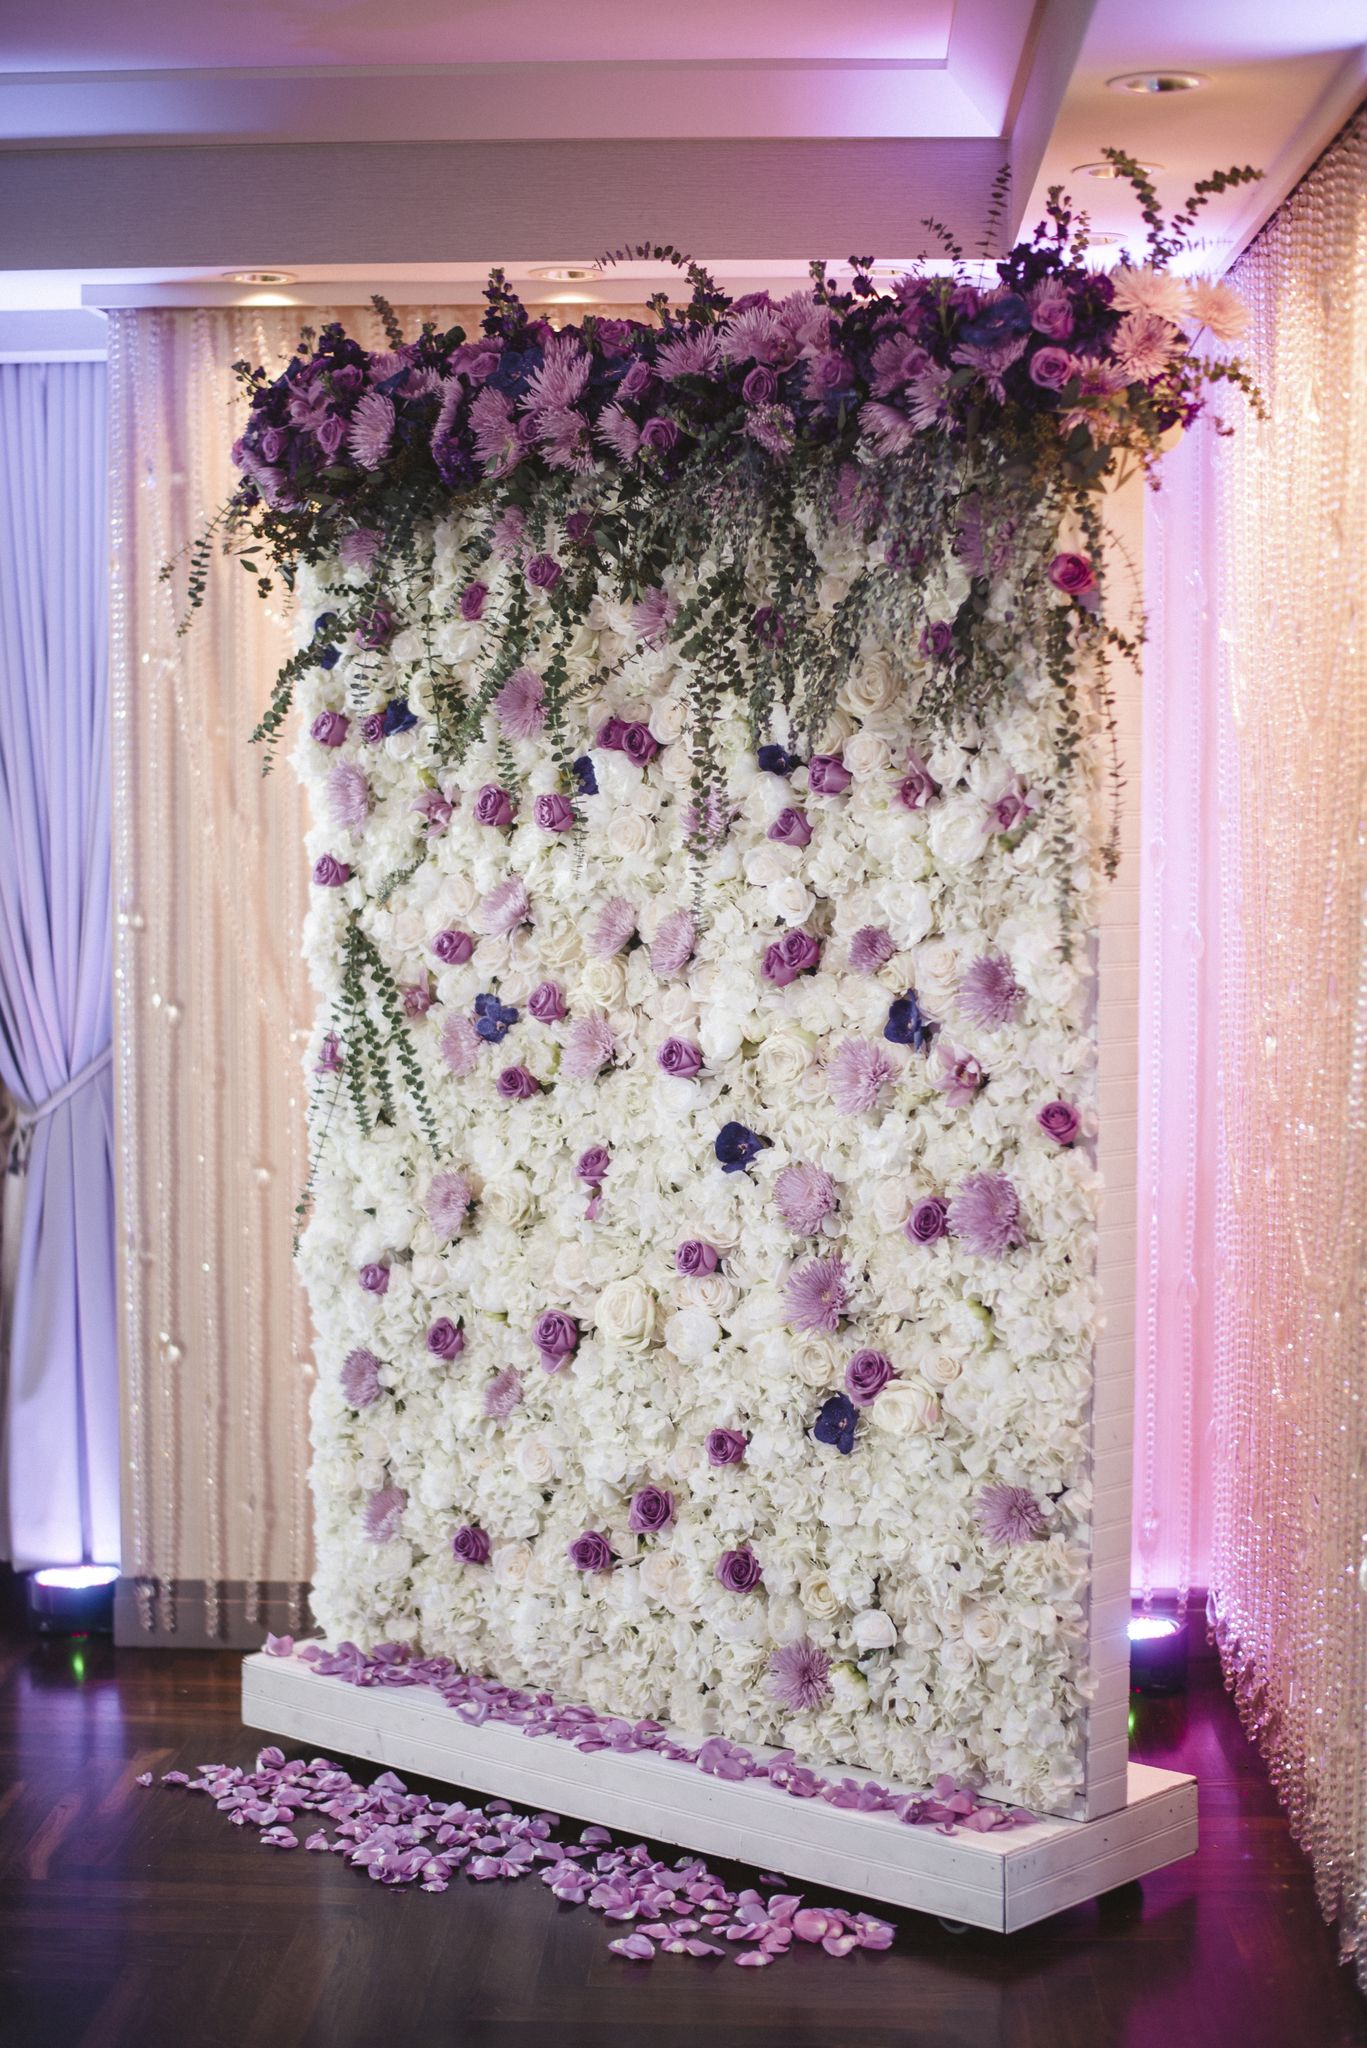 Floriculture S White Lavender Flower Wall With Large Cascading Arrangements Accented A White Flower Arrangements Pink Flower Arrangements Flower Wall Wedding